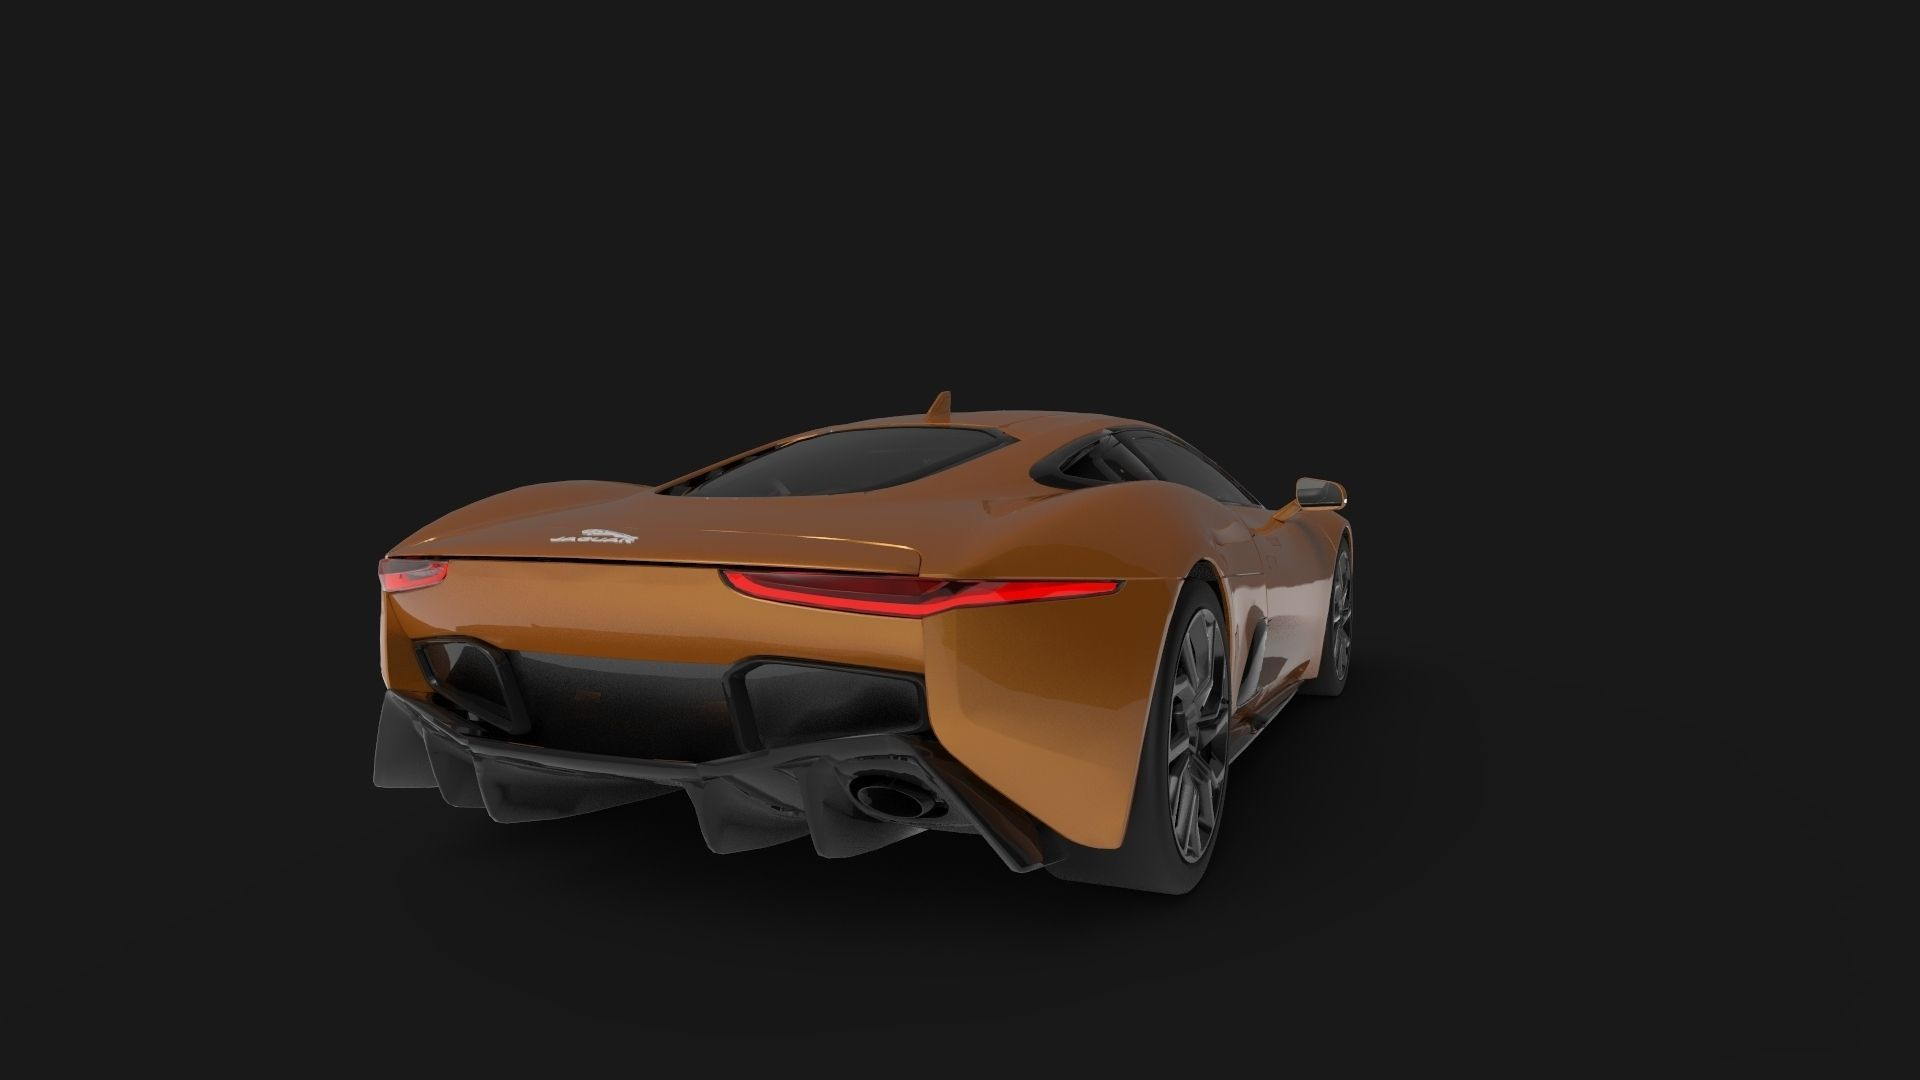 jaguar c x75 supercar concept prototype drive review. Black Bedroom Furniture Sets. Home Design Ideas